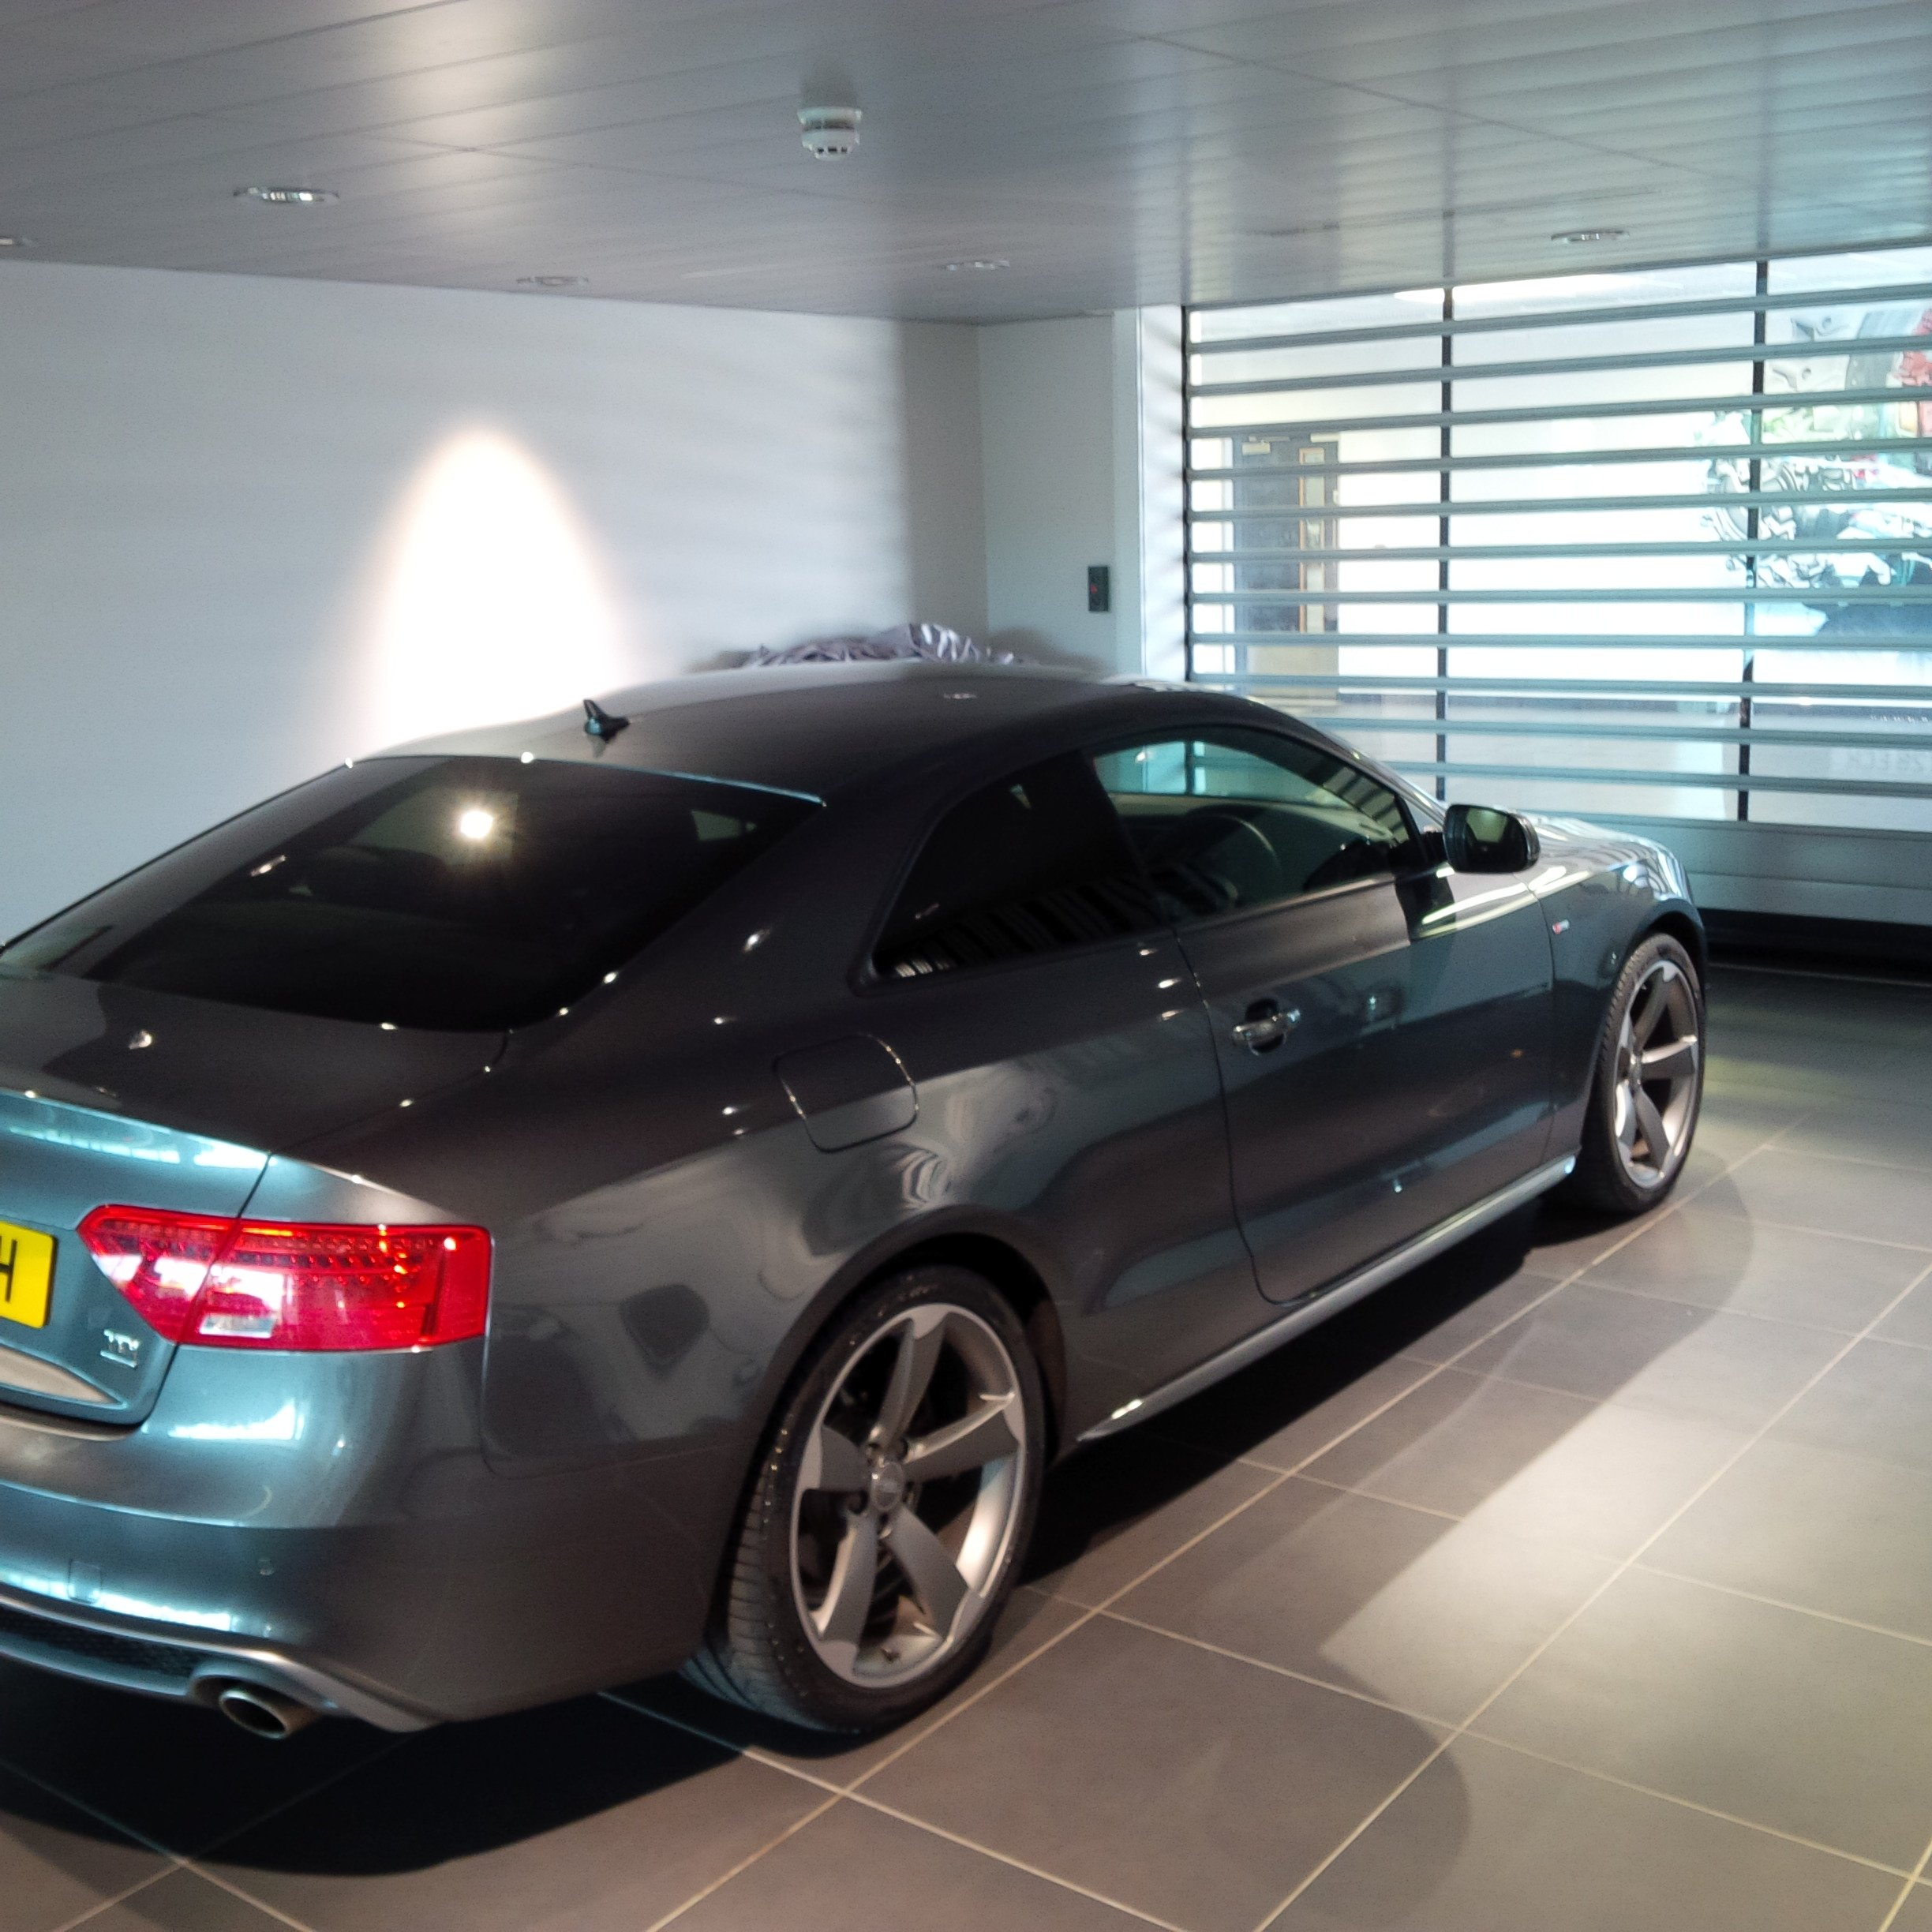 sale used audi reviews s cars luxury of for here amp features click price